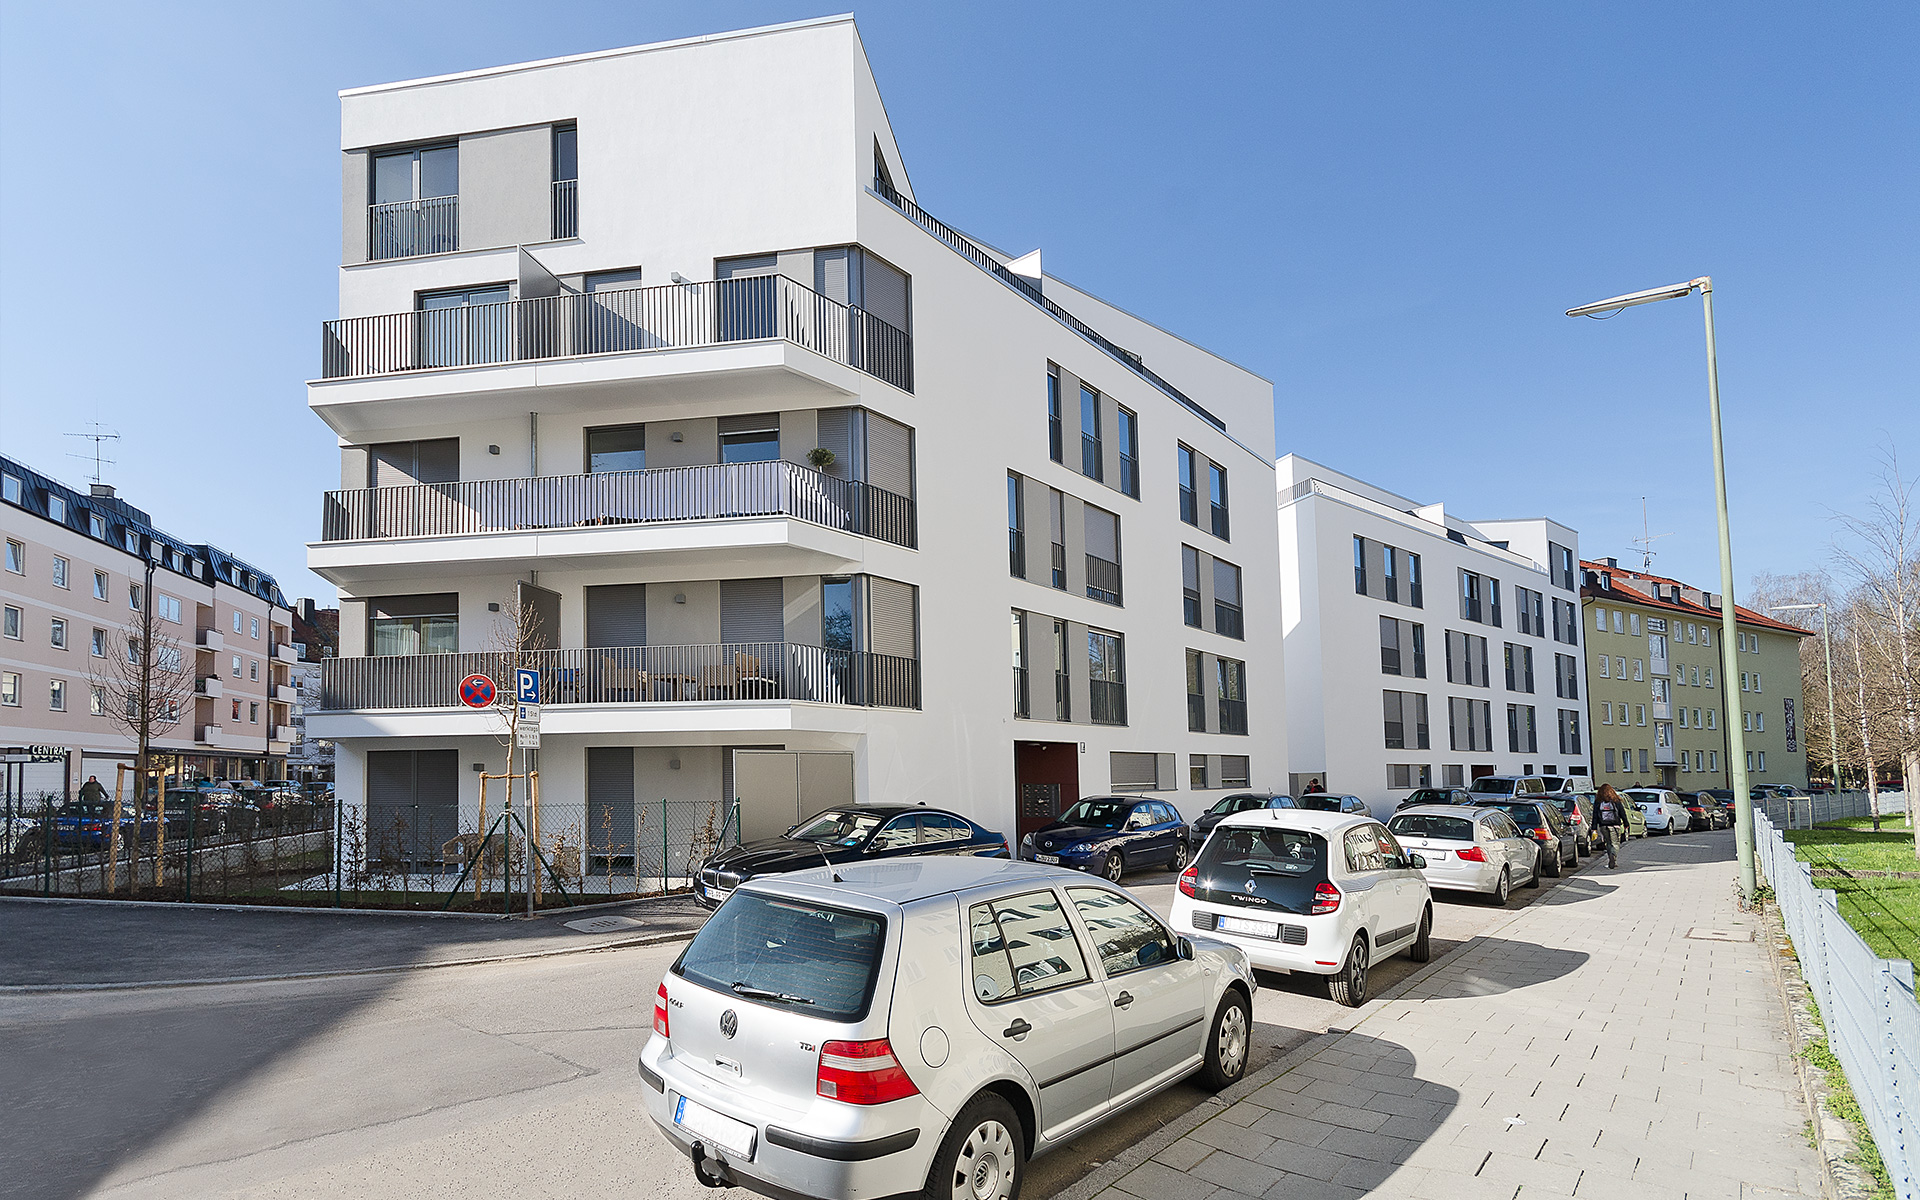 On two properties in Munich Pasing, Irmonherstr. 9 and 11, a modern residential building complex with 36 apartments and underground parking was constructed.